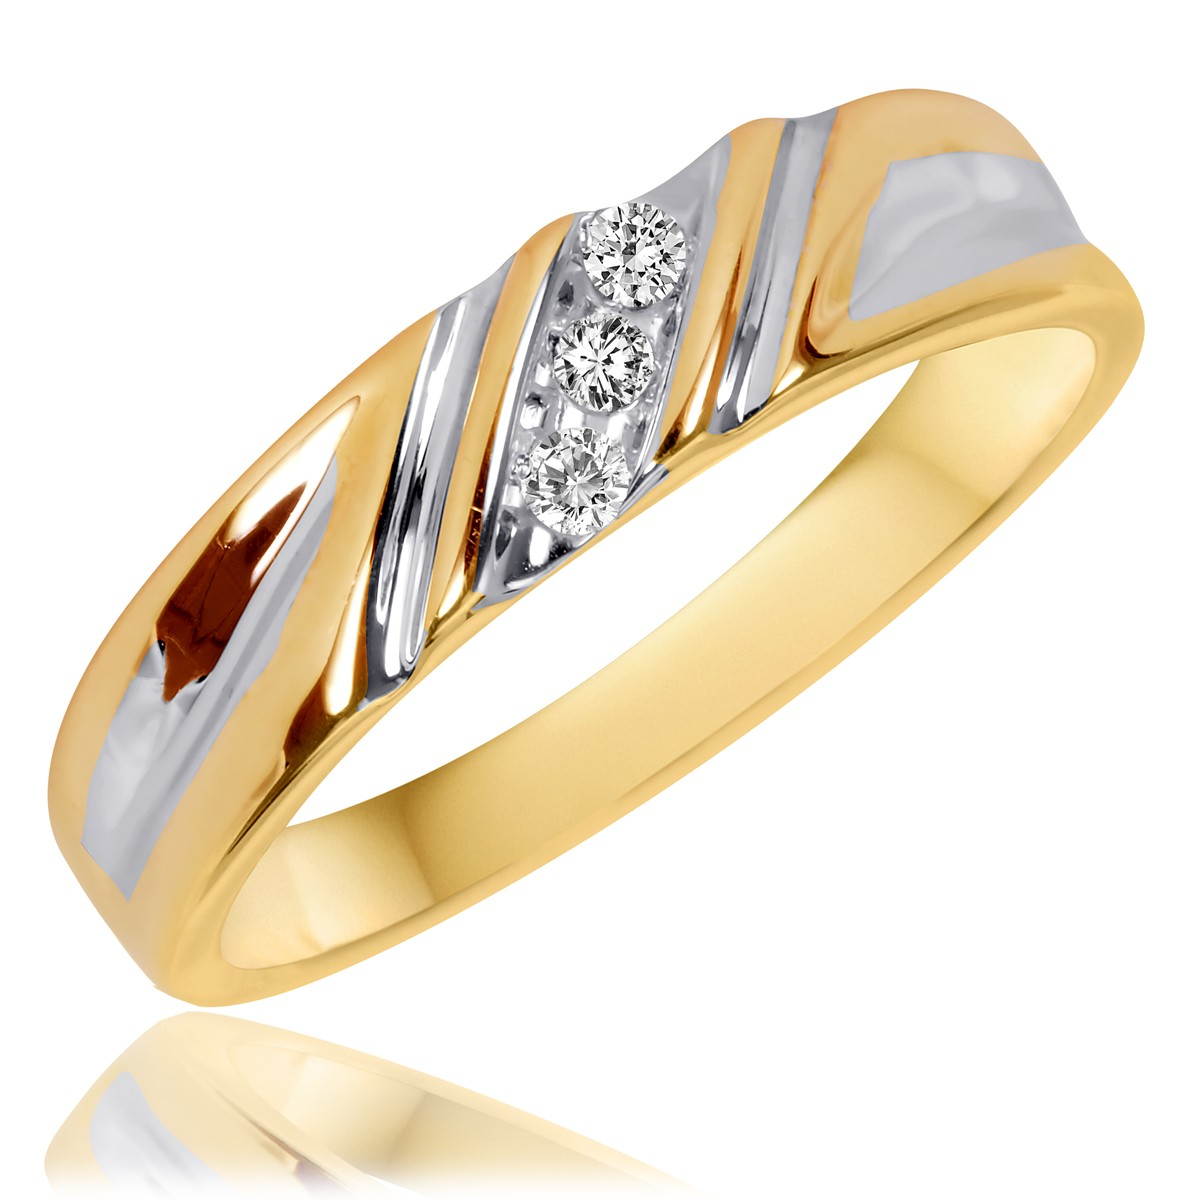 1/20 Carat T.W. Diamond Men's Wedding Band 10K Yellow Gold